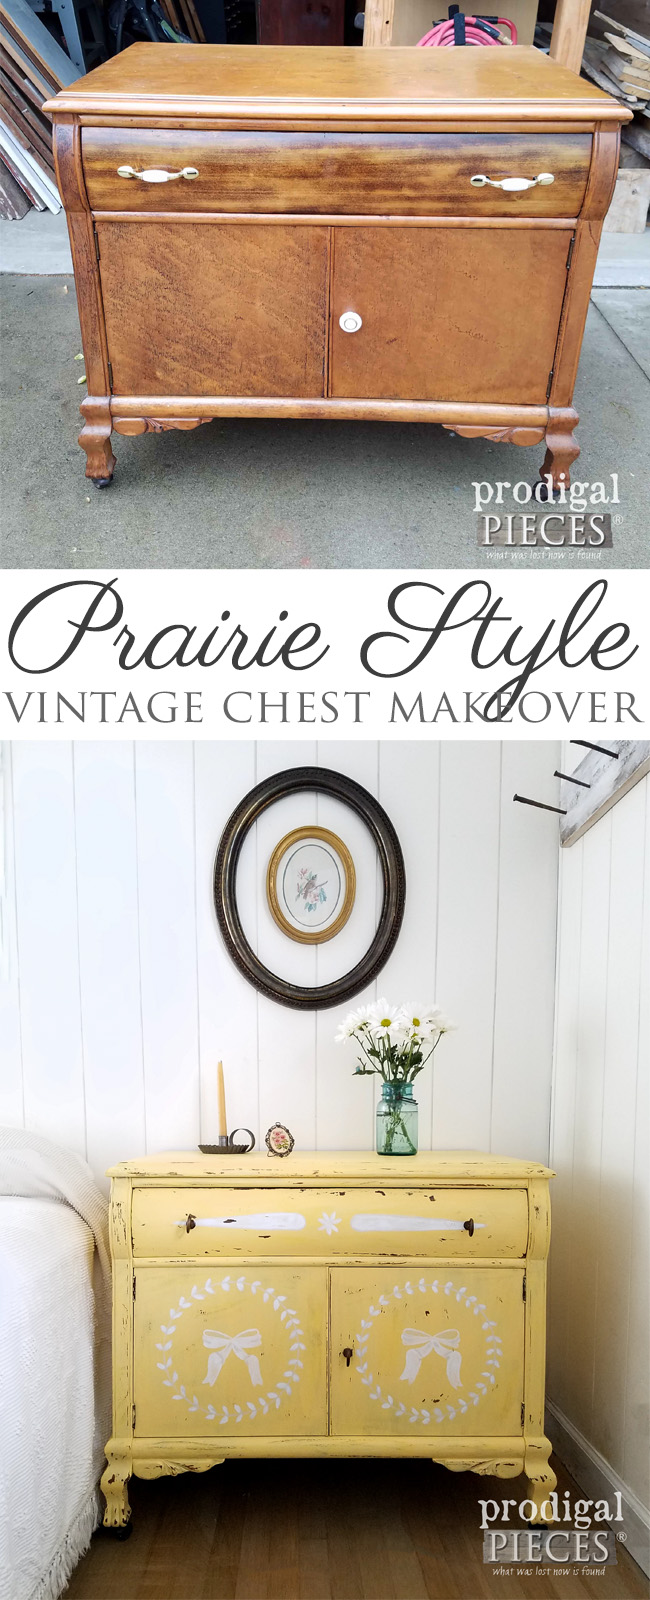 Prairie Style Vintage Chest Makeover by Larissa of Prodigal Pieces | prodigalpieces.com